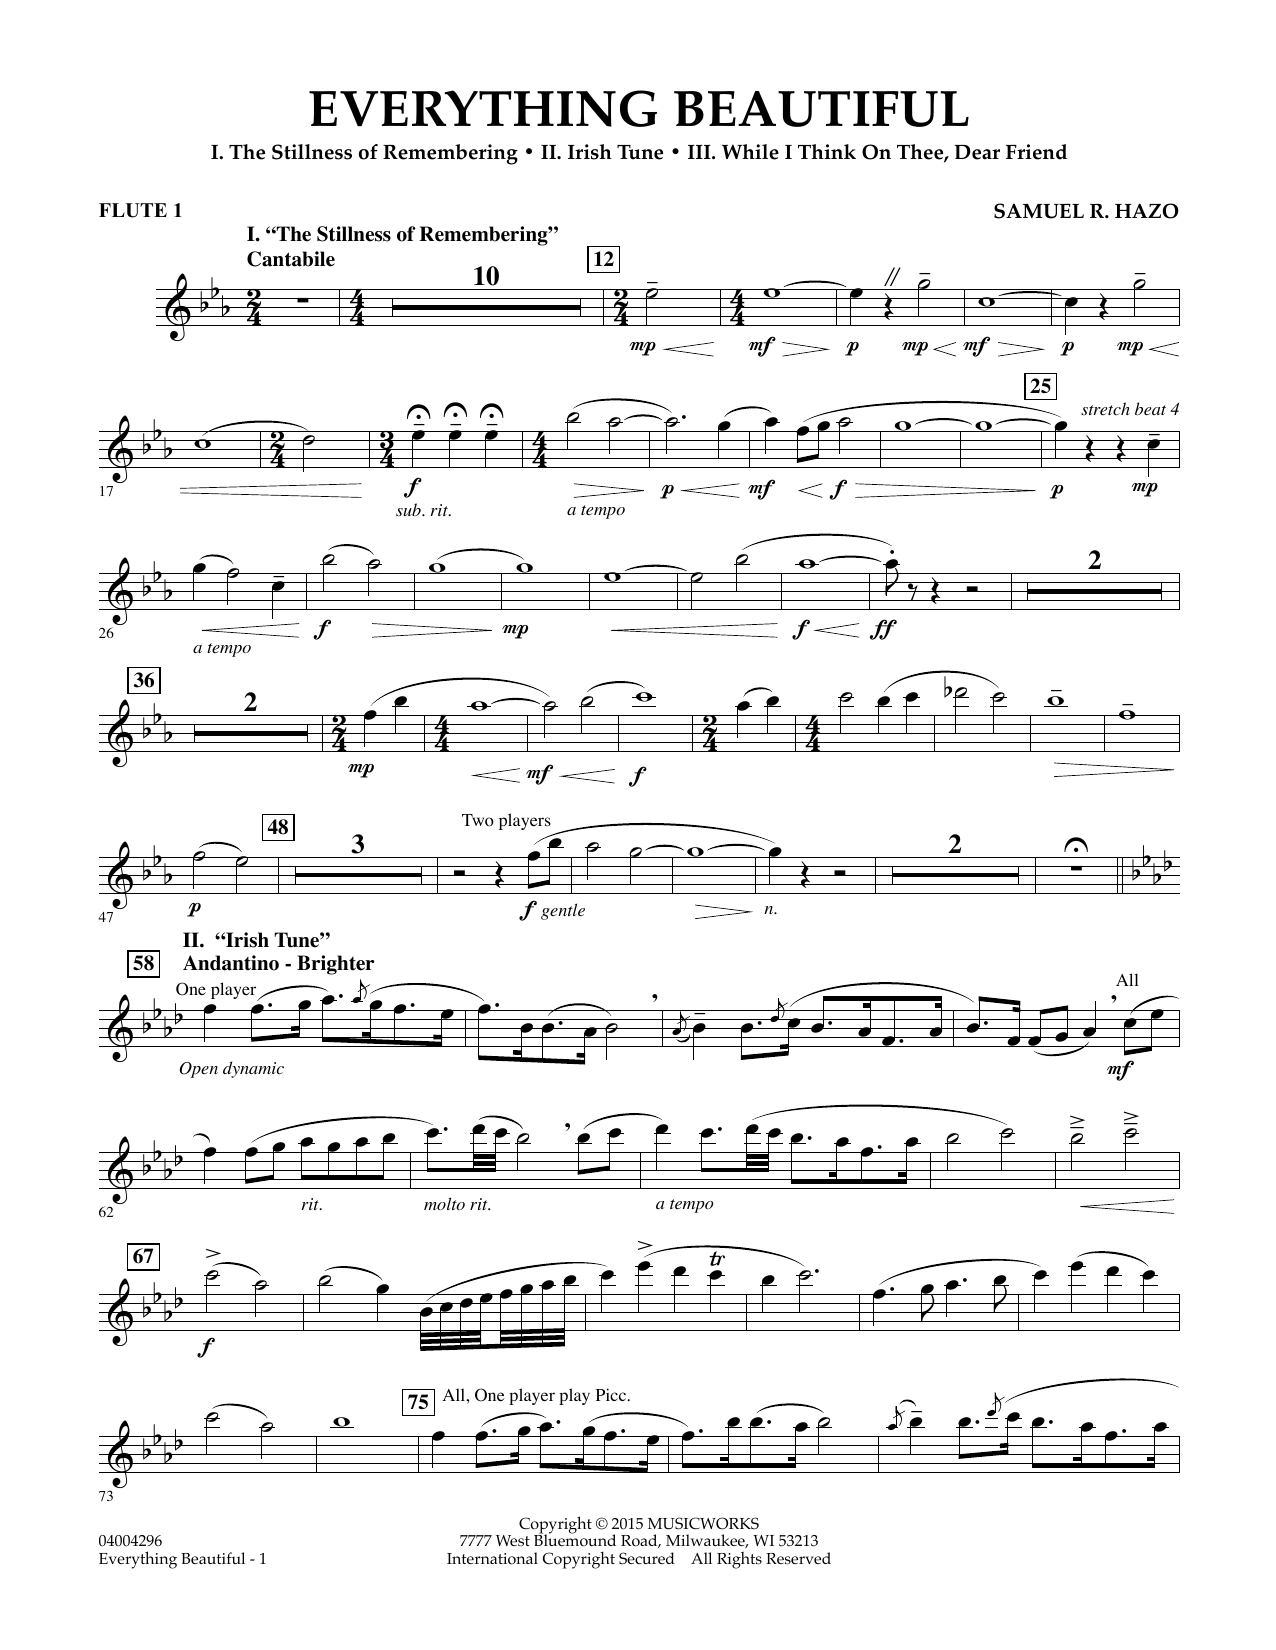 Everything Beautiful - Flute 1 - Sheet Music to Download